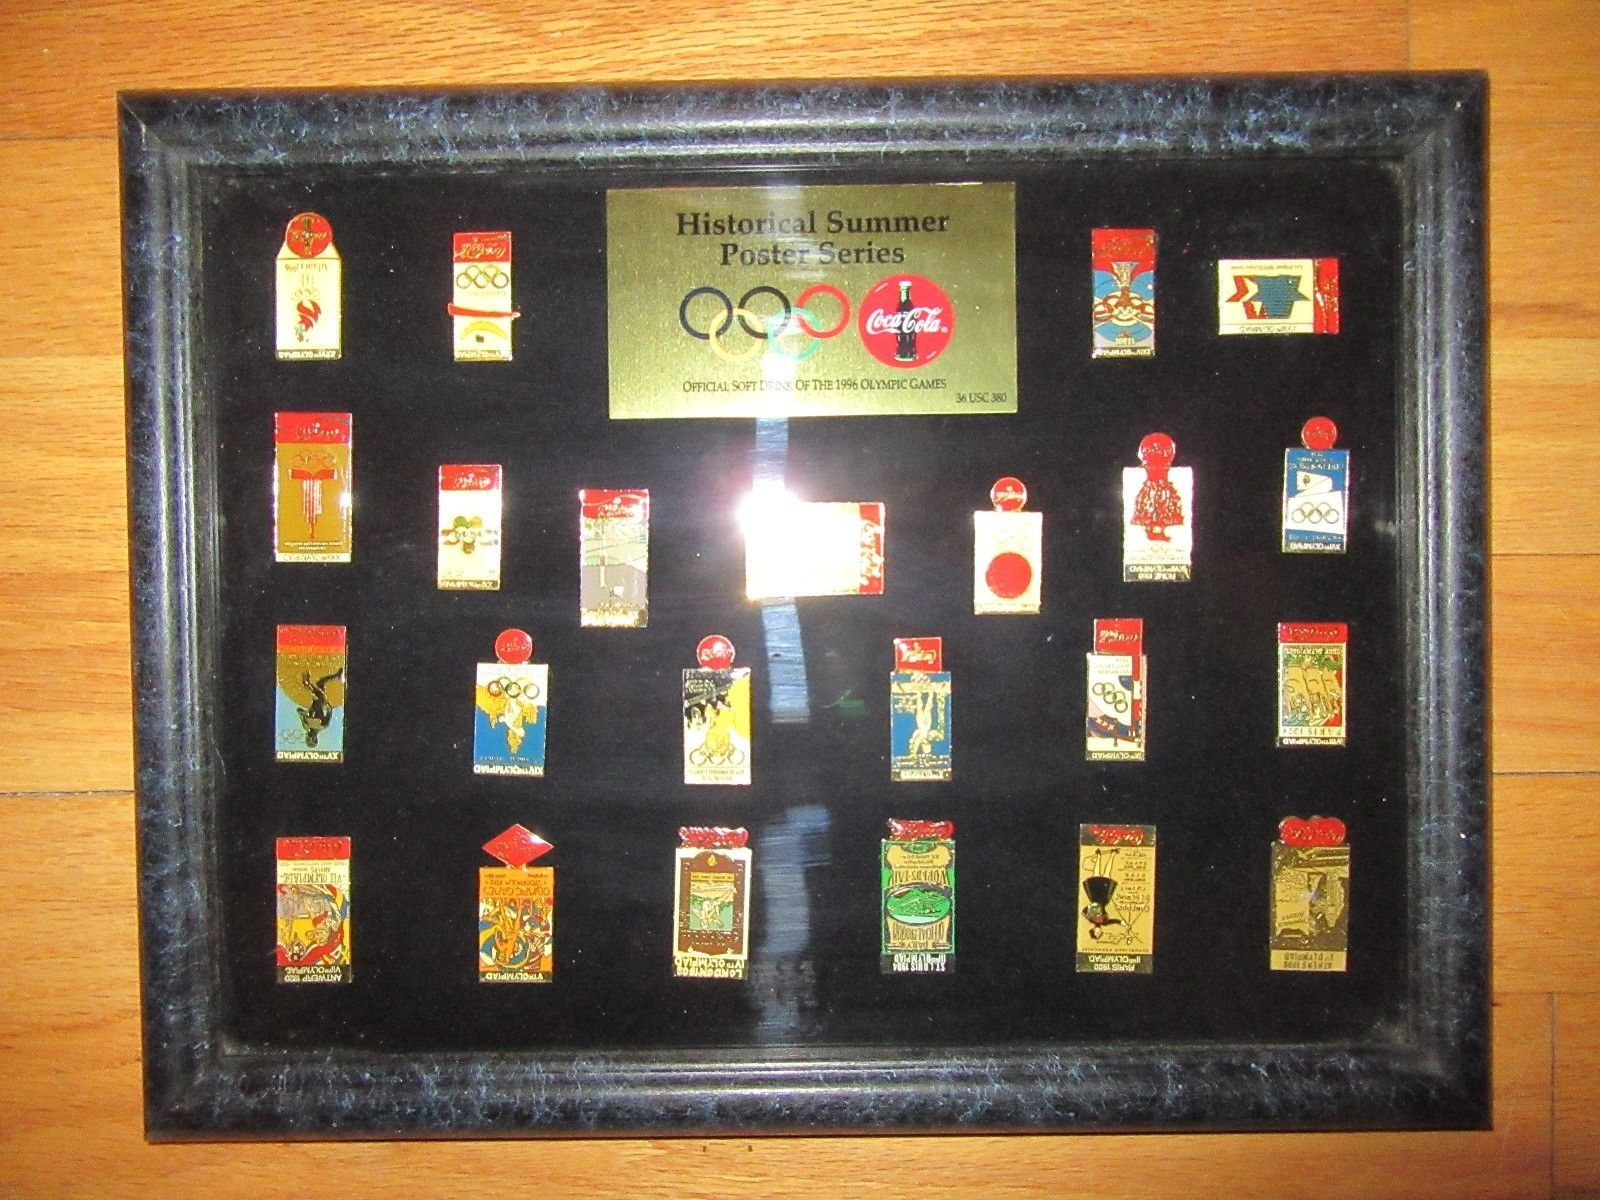 8C/RARE 1996 COCA COLA OLYMPIC HISTORICAL SUMMER POSTER SERIES PIN SET/23 PINS!